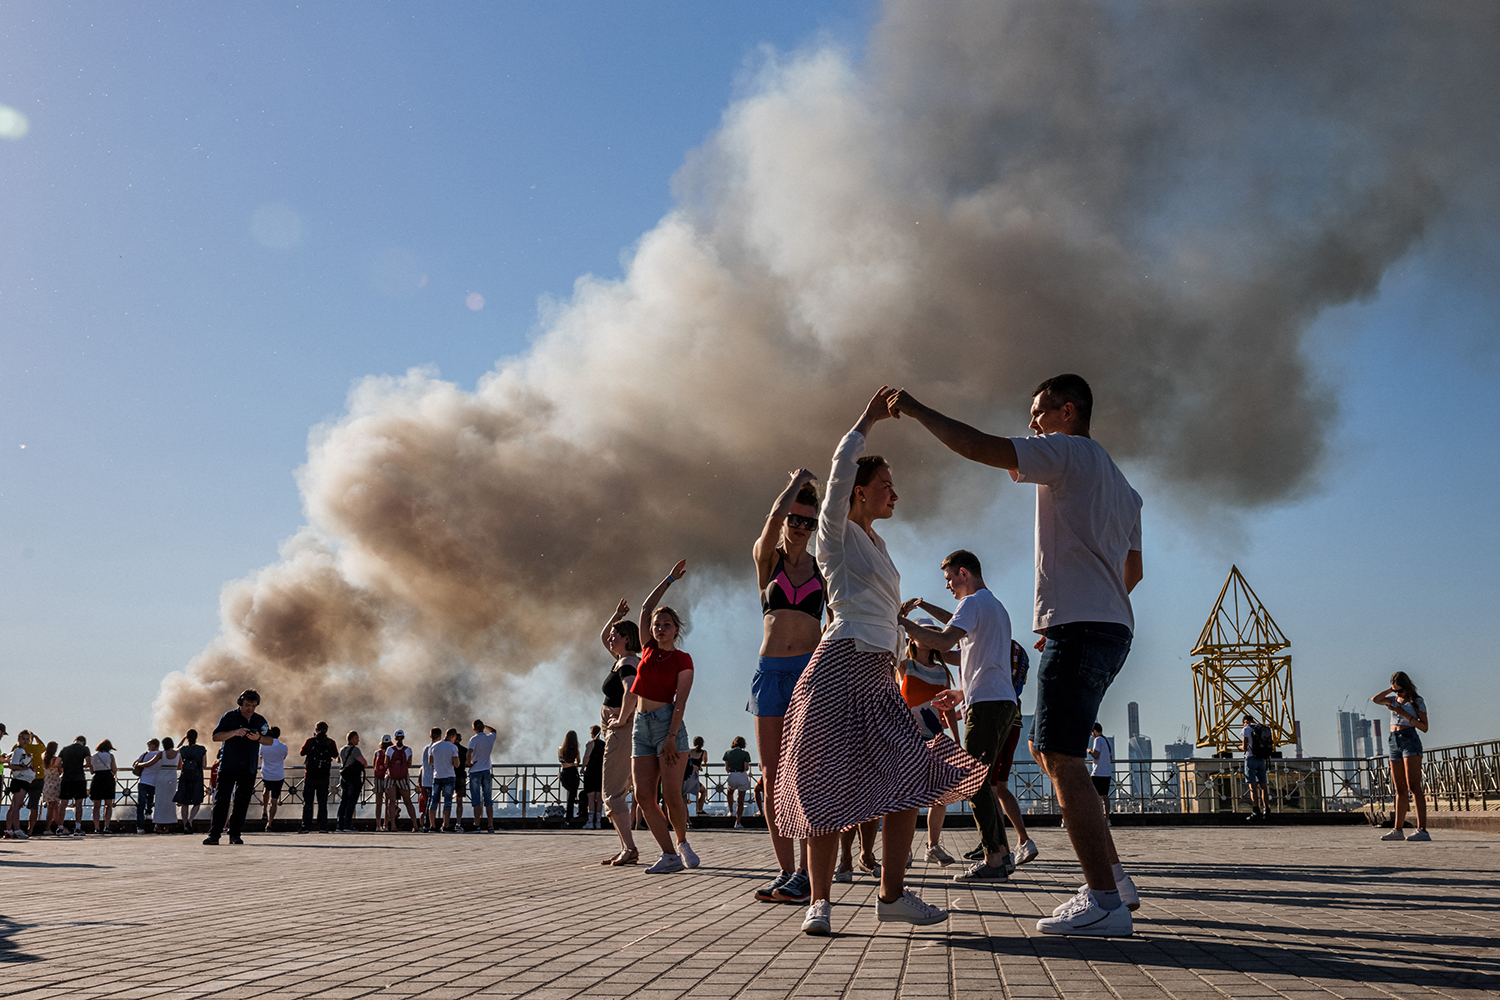 Russians dance as building burns behind them